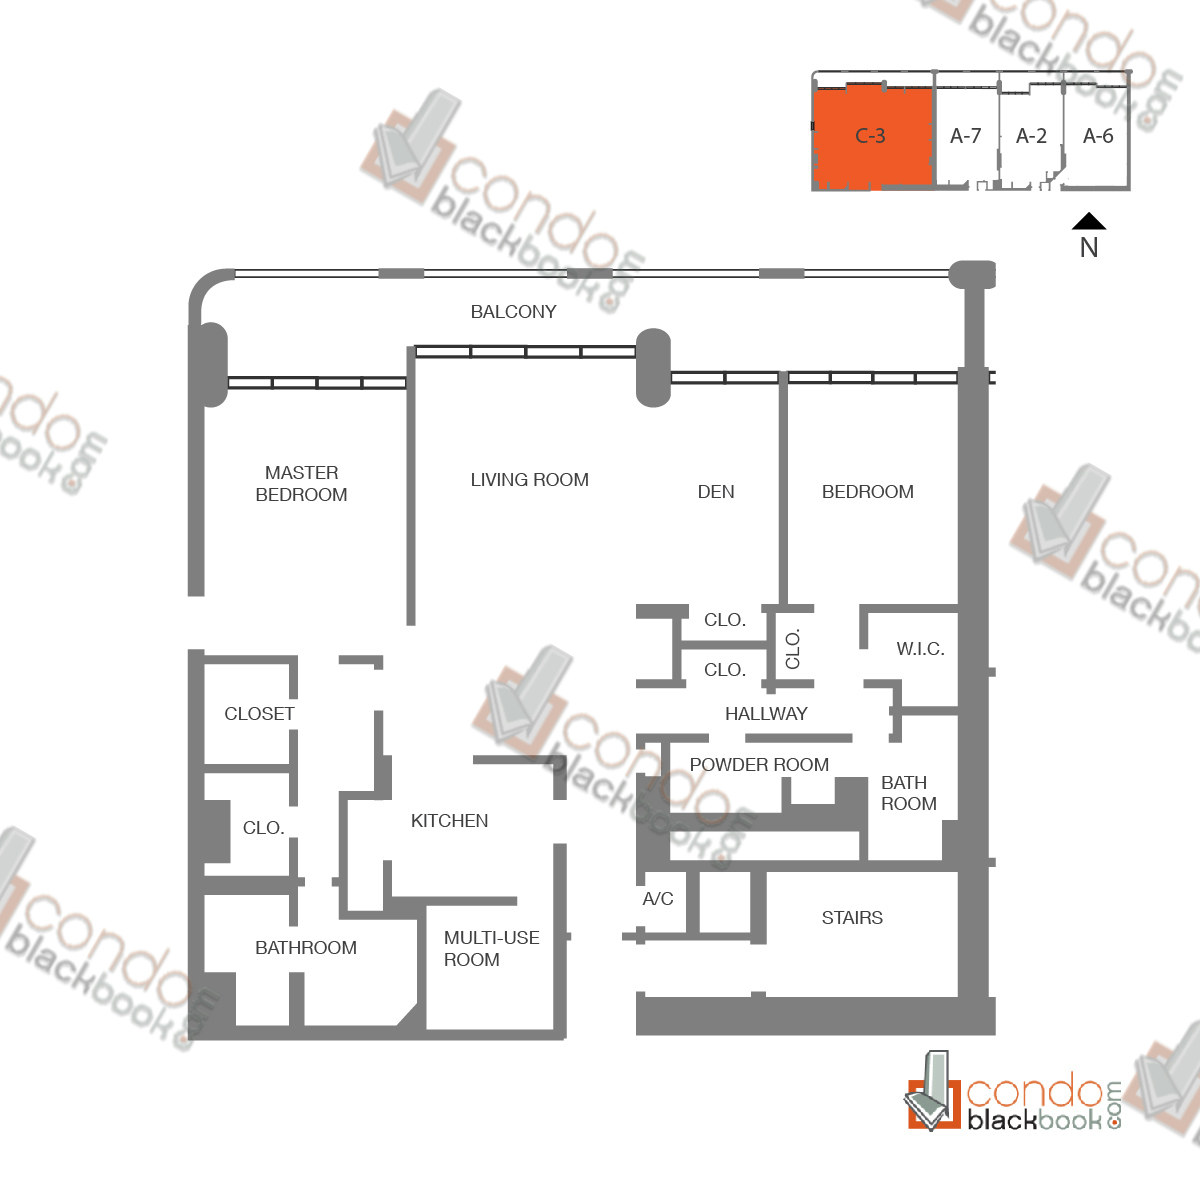 Floor plan for The Grand Arts & Entertainment District Miami, model Unit 51, line A-1051 to A-4251, B-4151, C-4051, D-3951, 3/3 bedrooms, 1840 sq ft